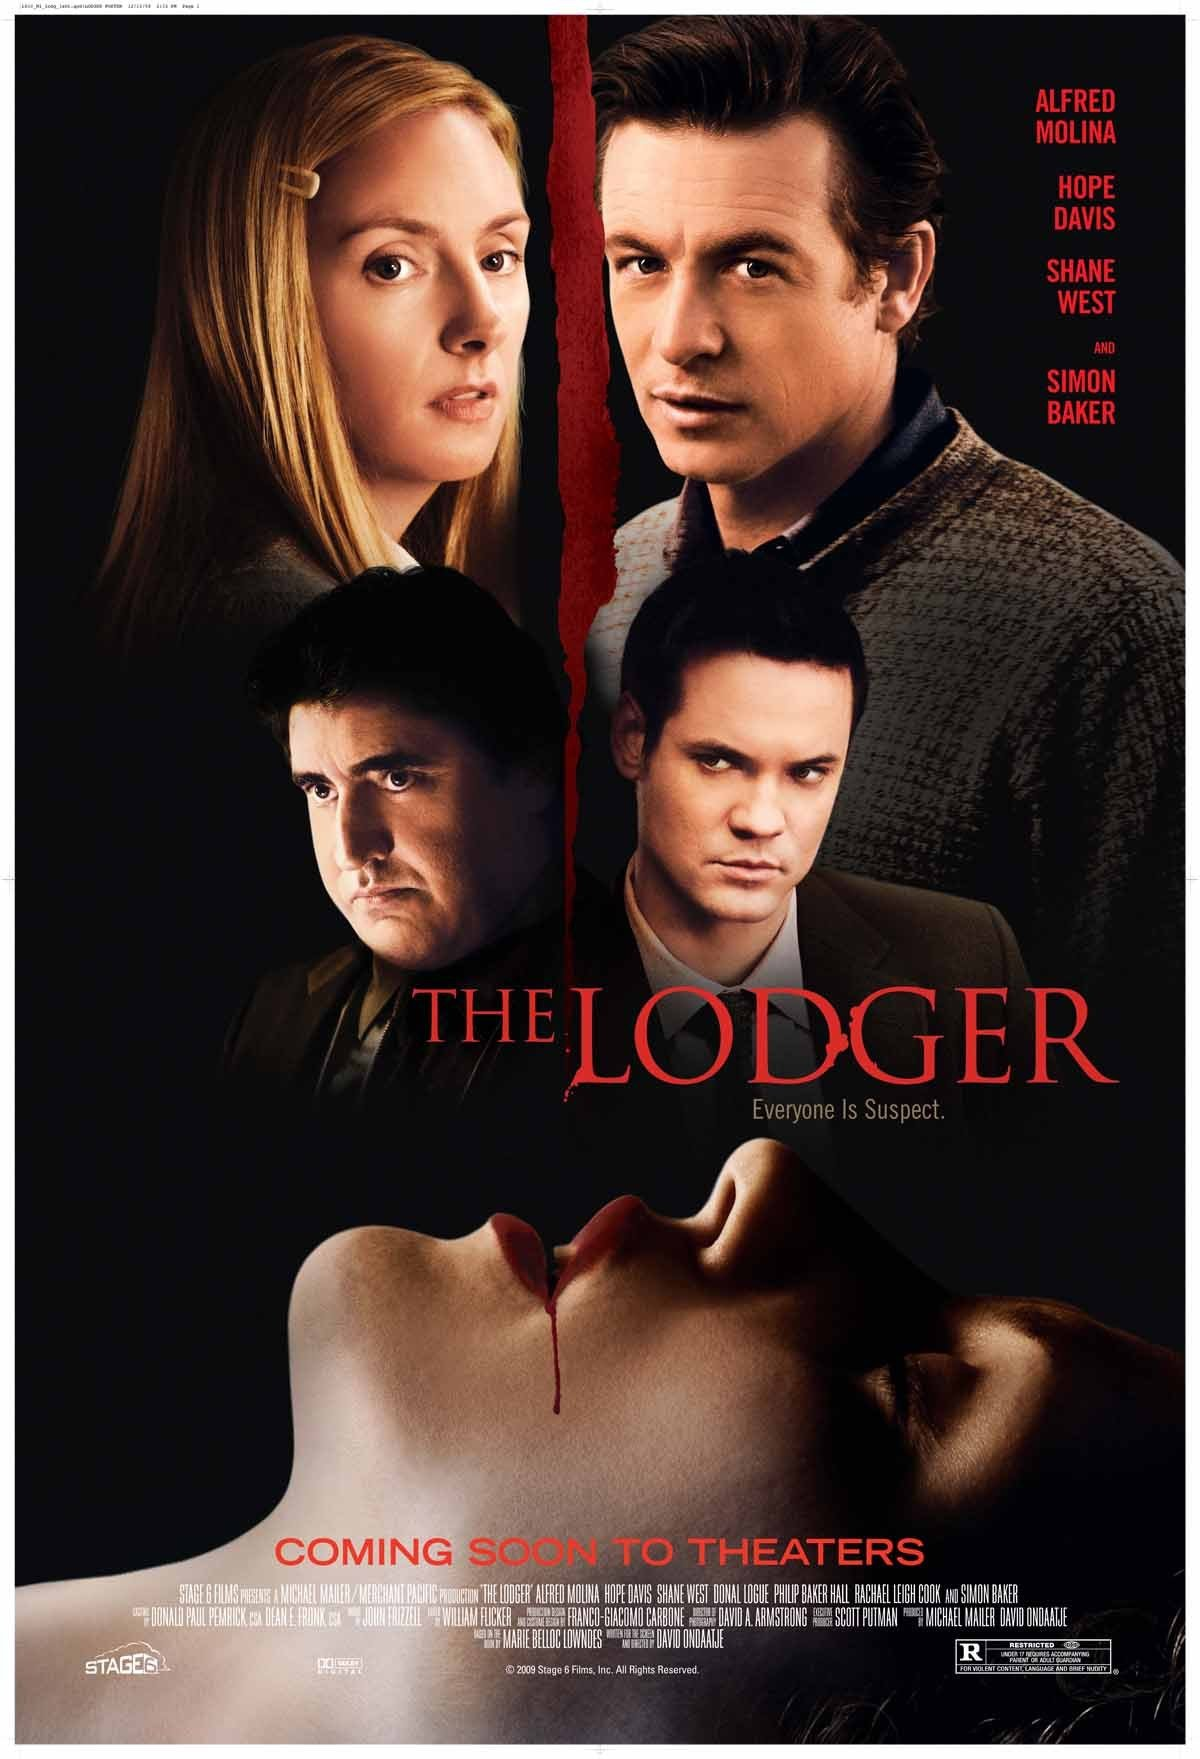 《The Lodger》房客 2008